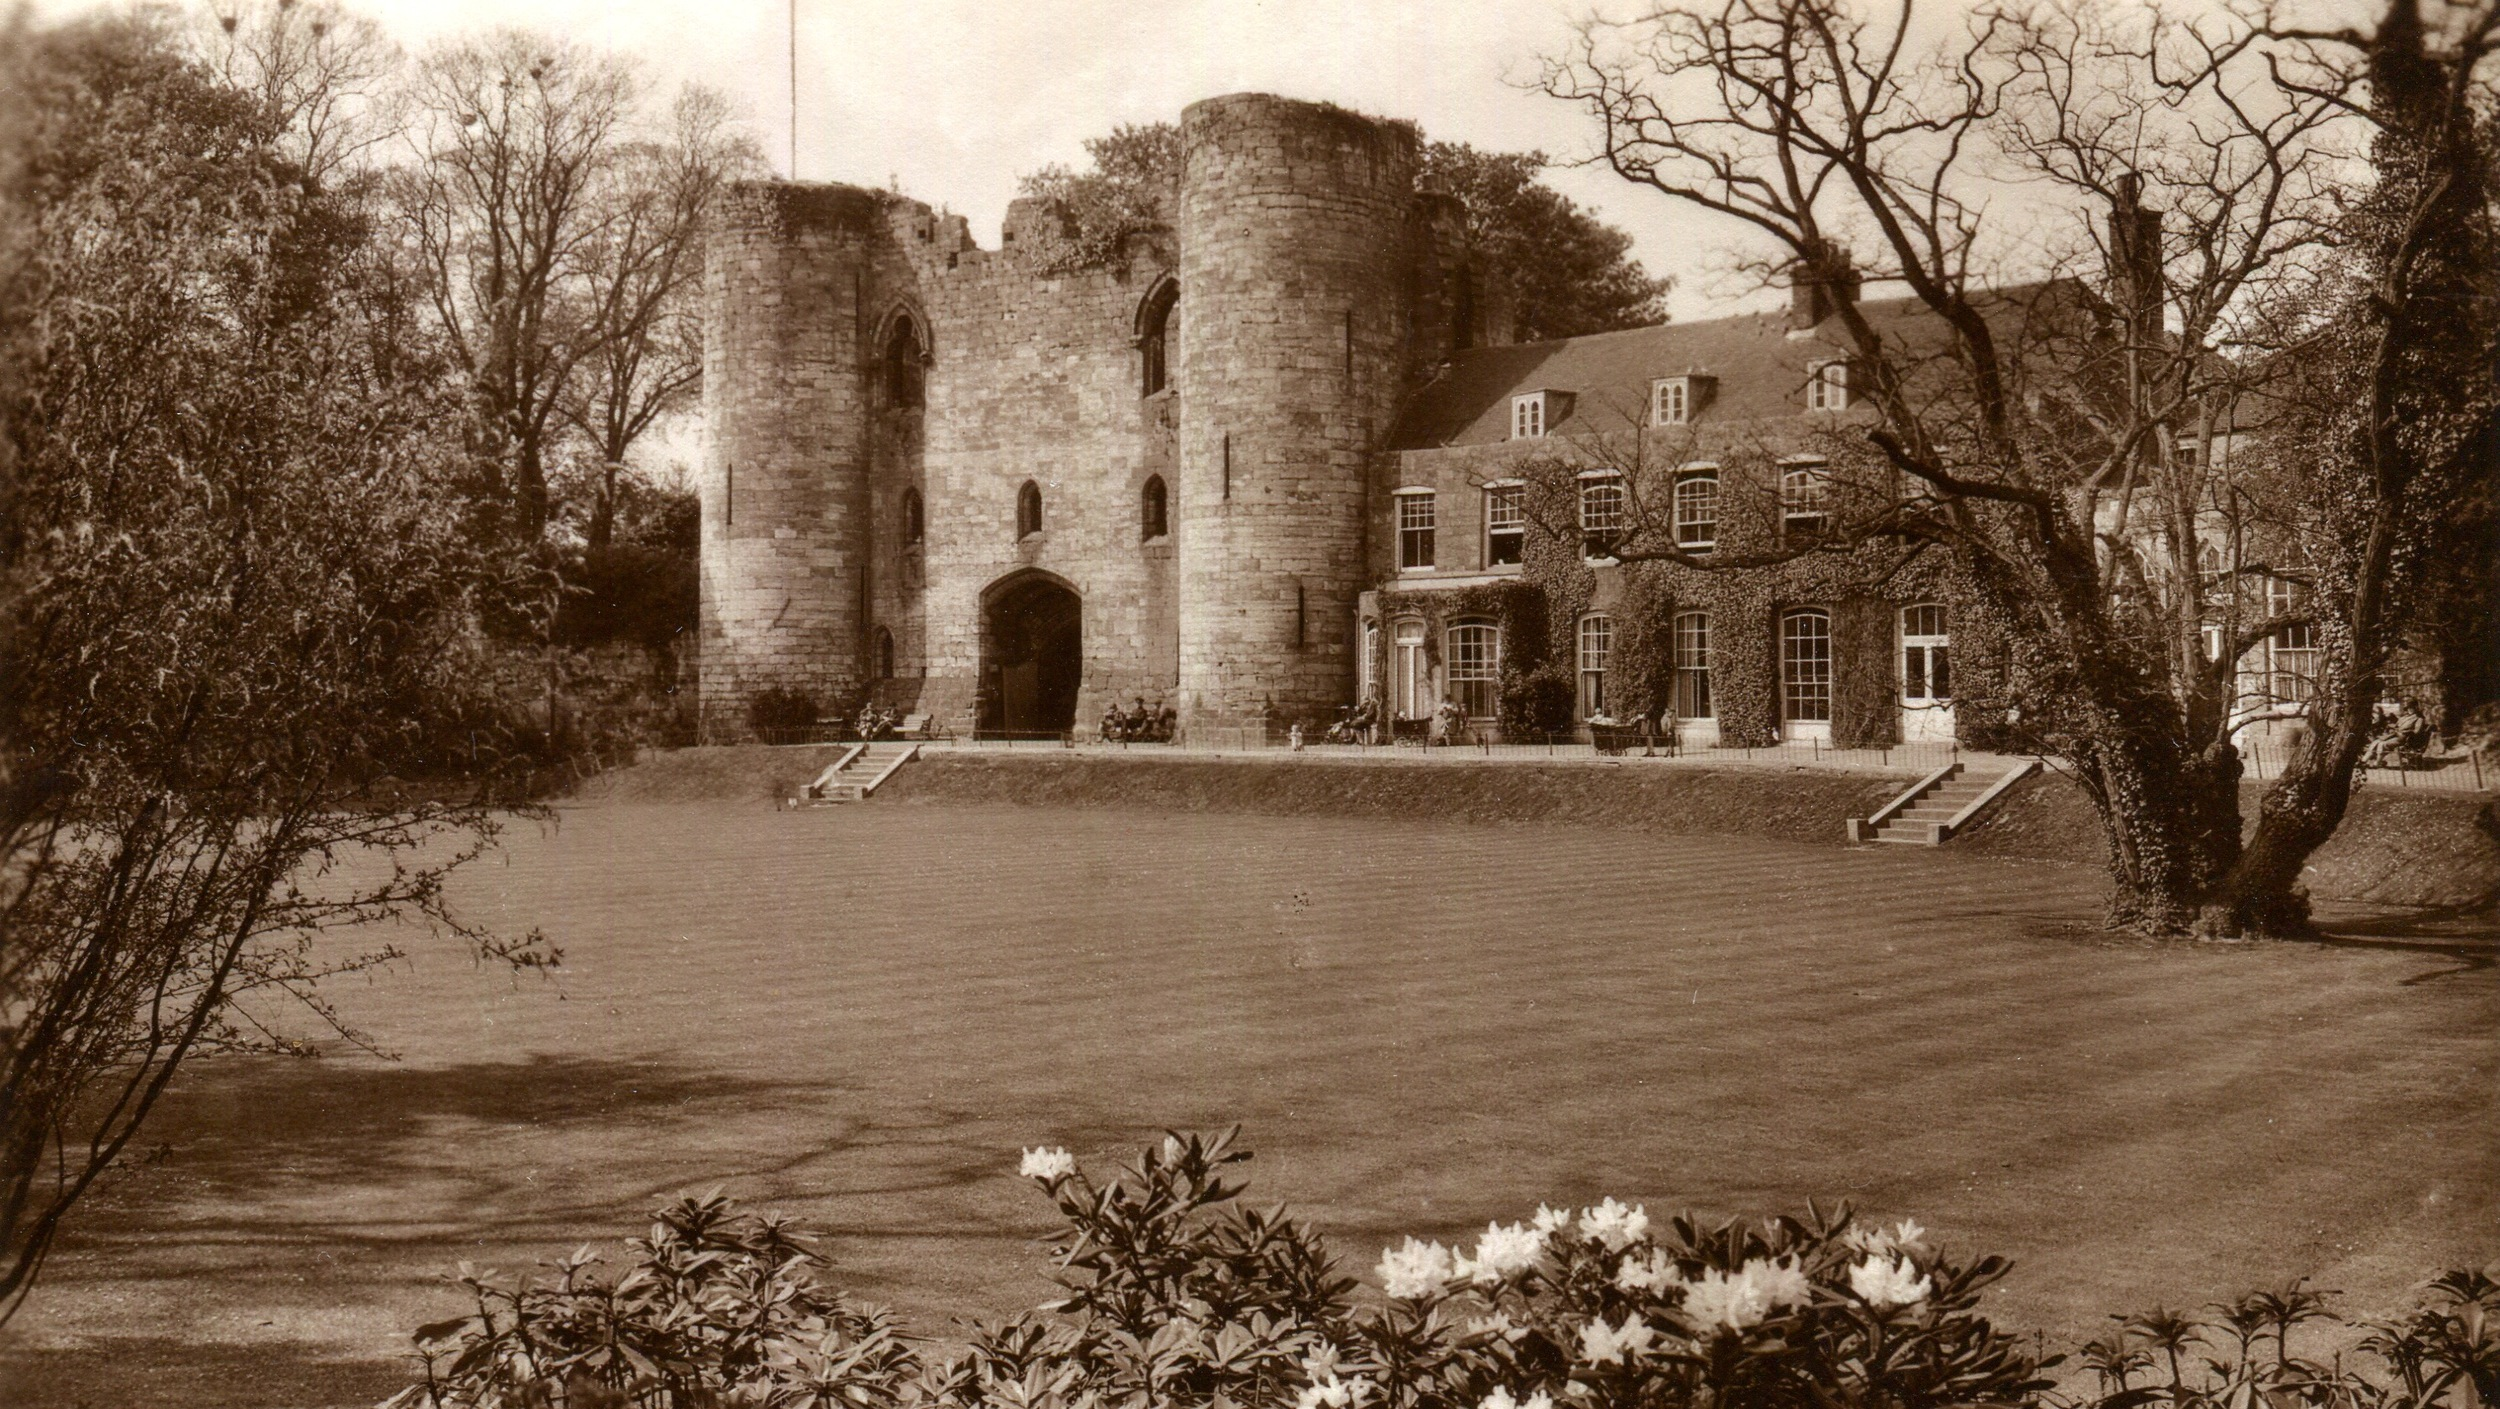 Tonbridge Castle, England